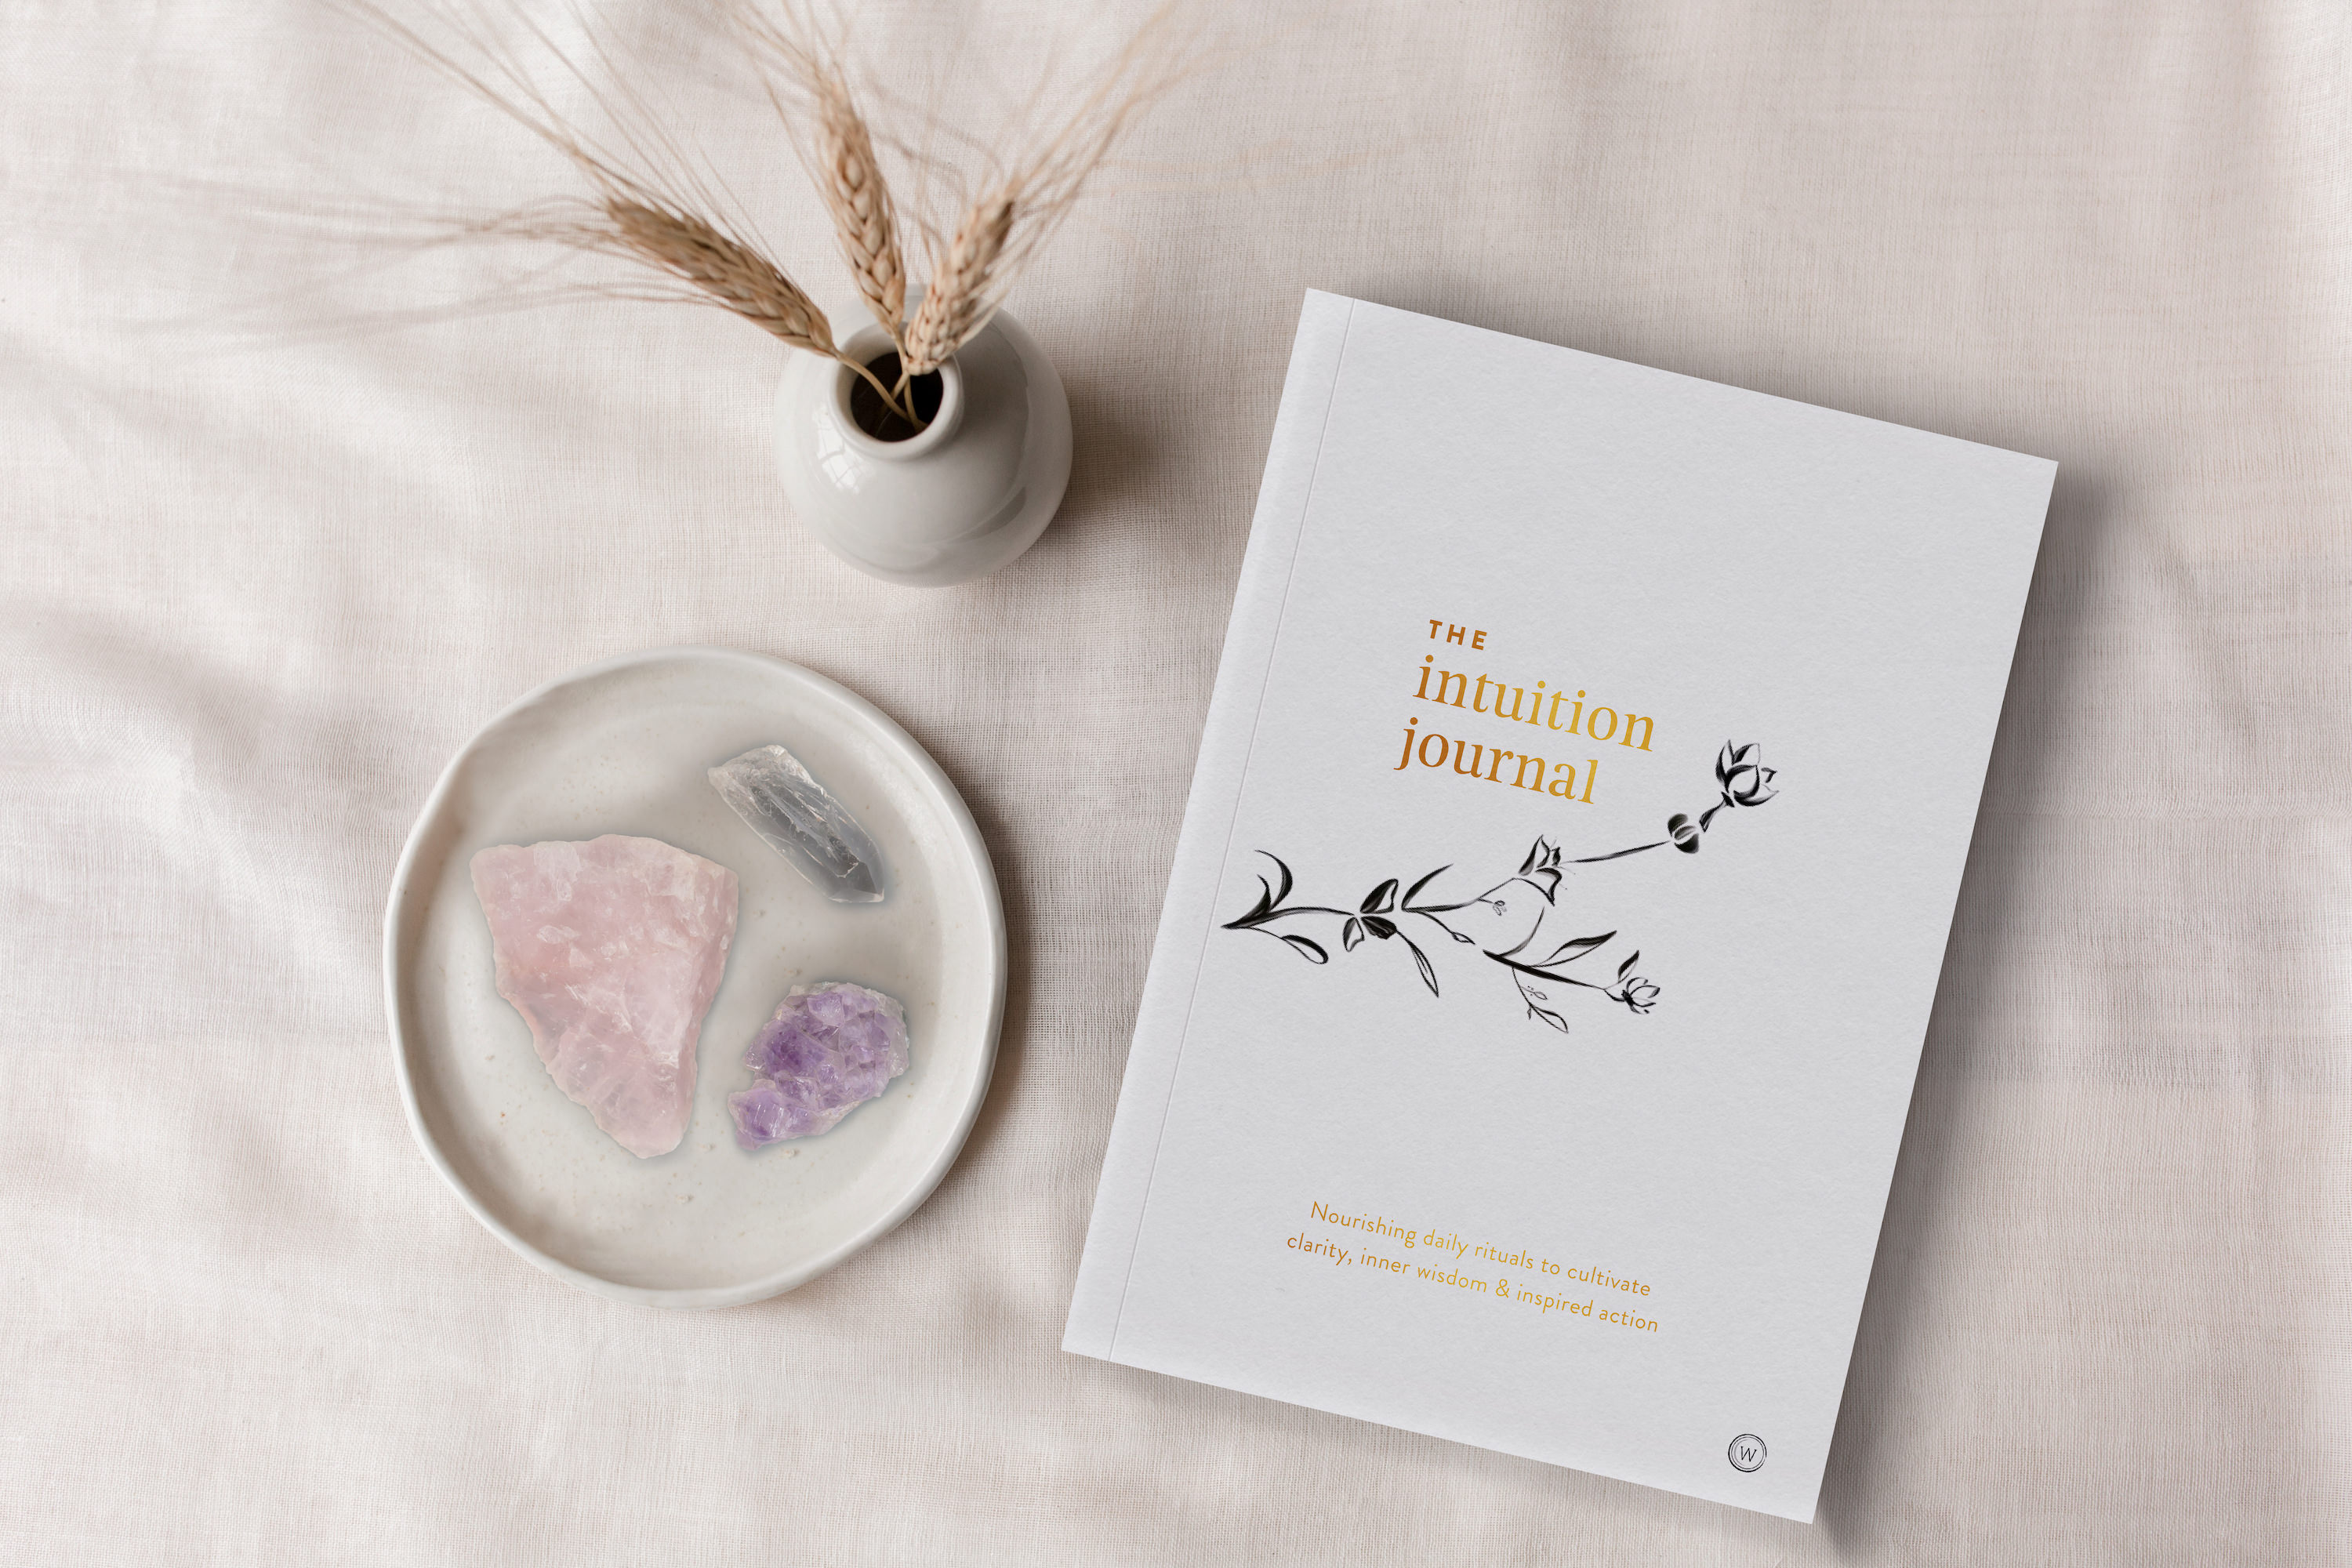 The Intuition Journal by Jo ChunYan Standing Cover Product Shot 9781786782793